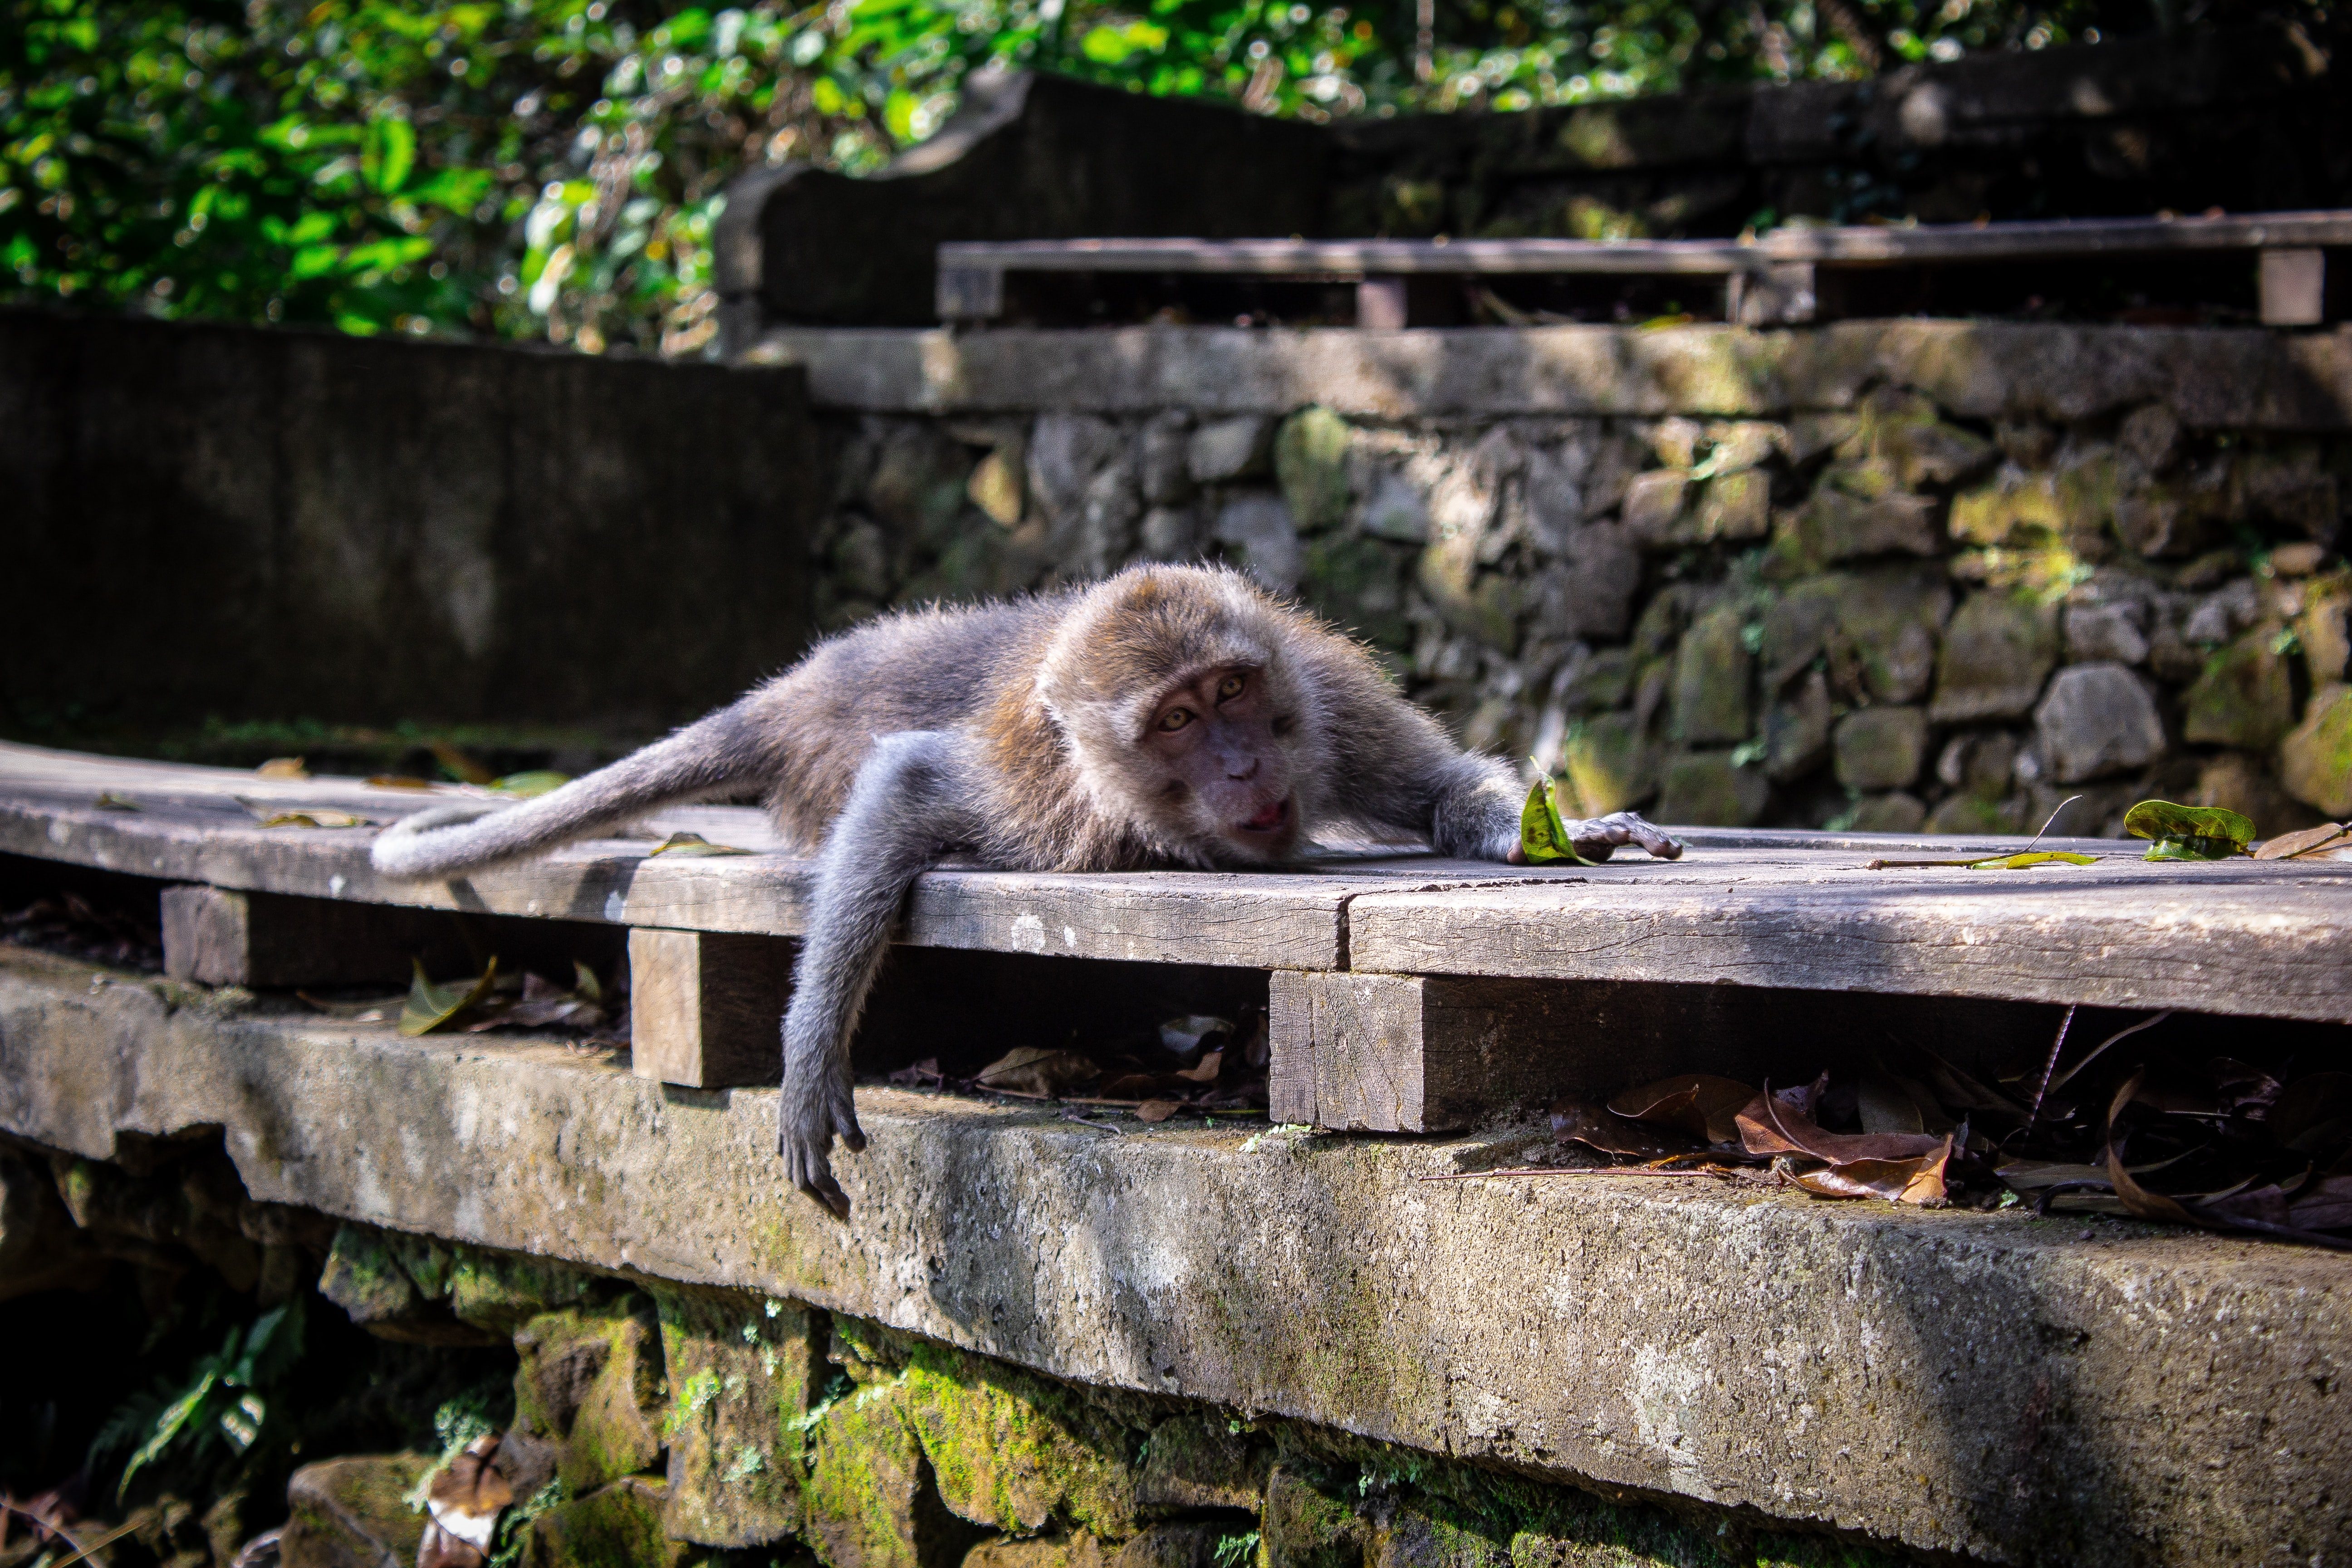 brown monkey lying on brown wooden surface